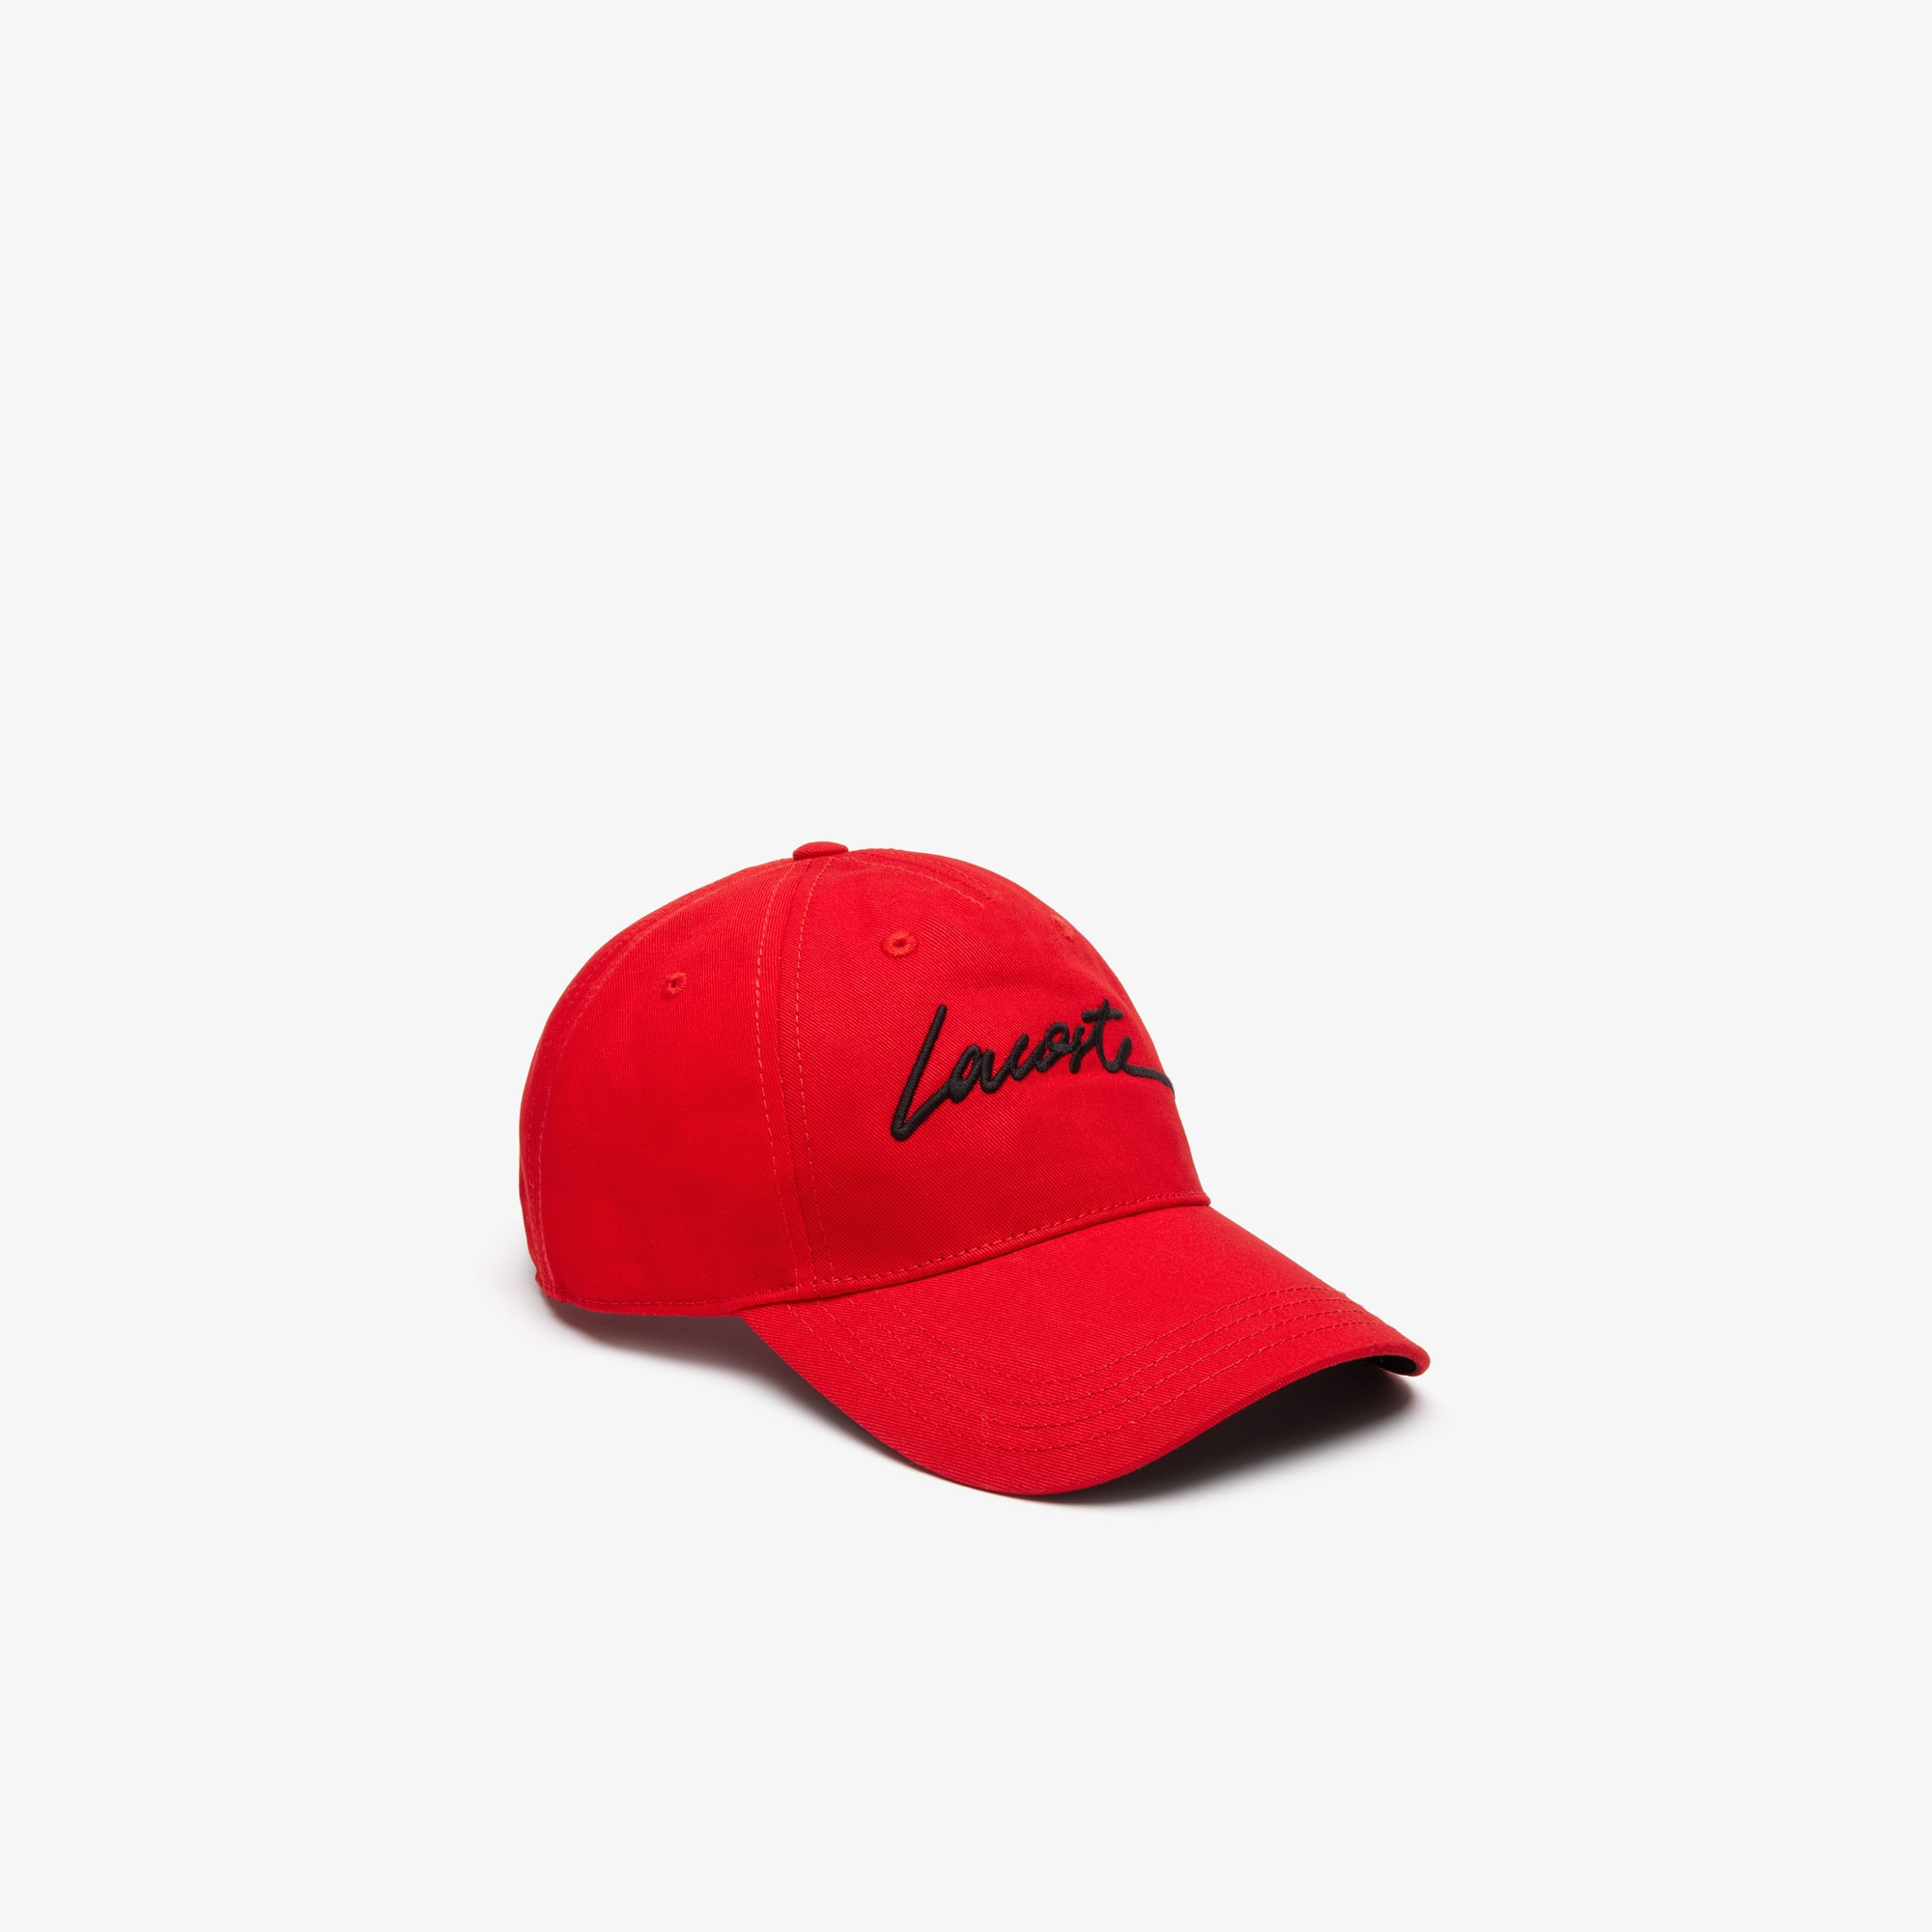 17679959 Caps & Hats | Men's Accessories | LACOSTE